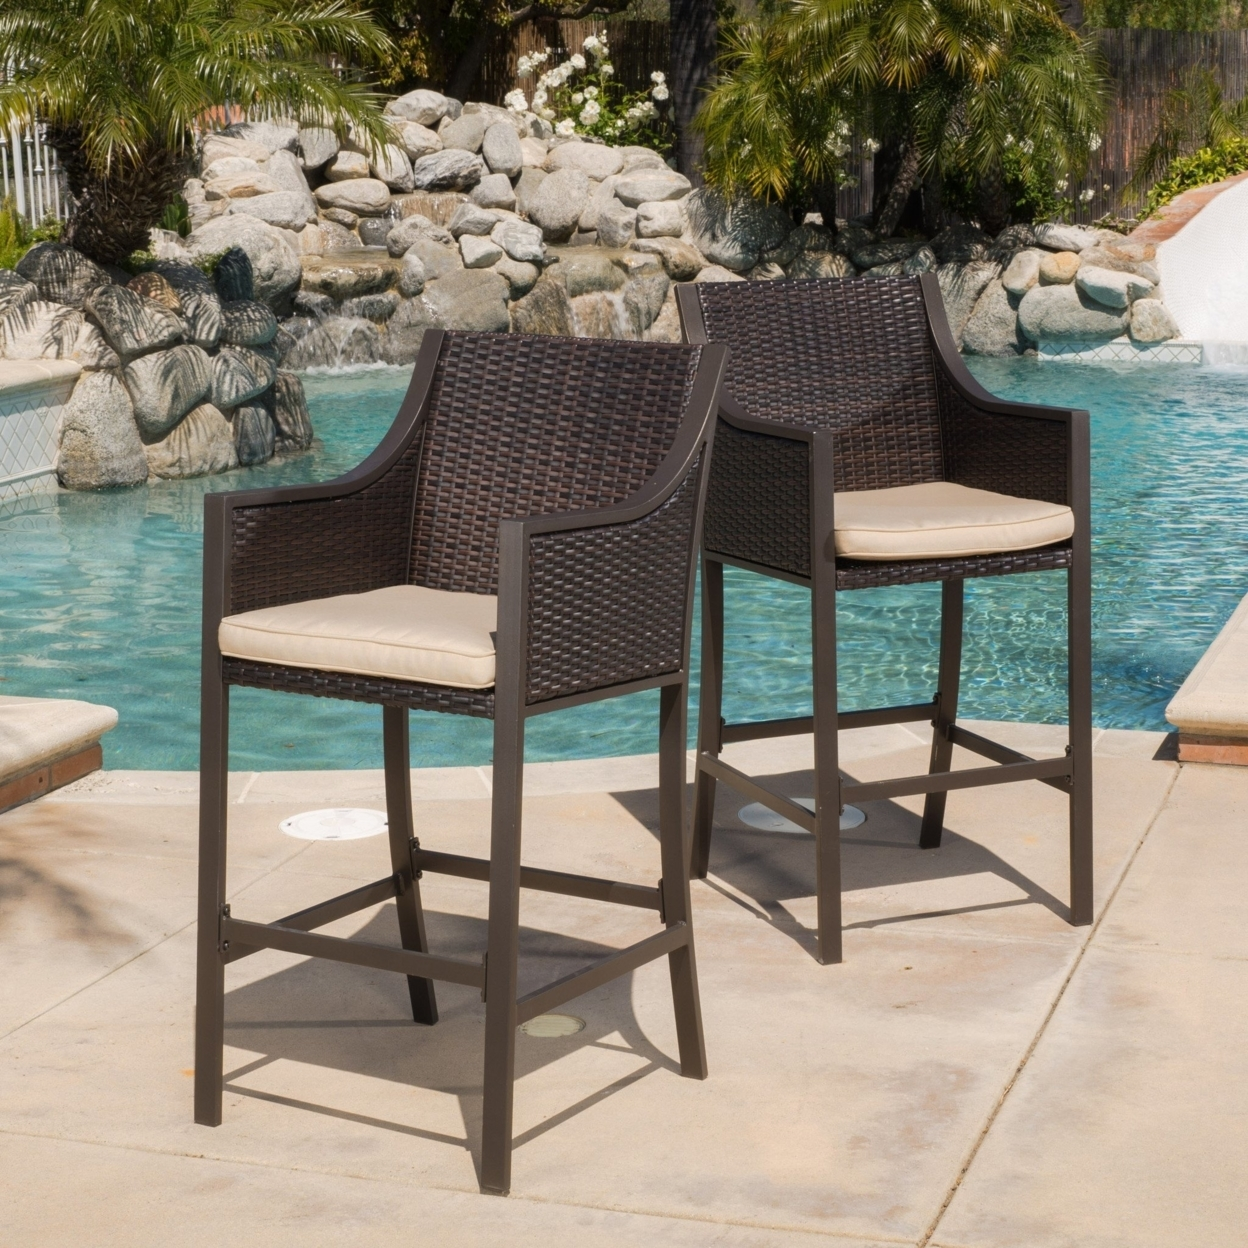 Rani Outdoor Brown Wicker Barstools (Set of 2)